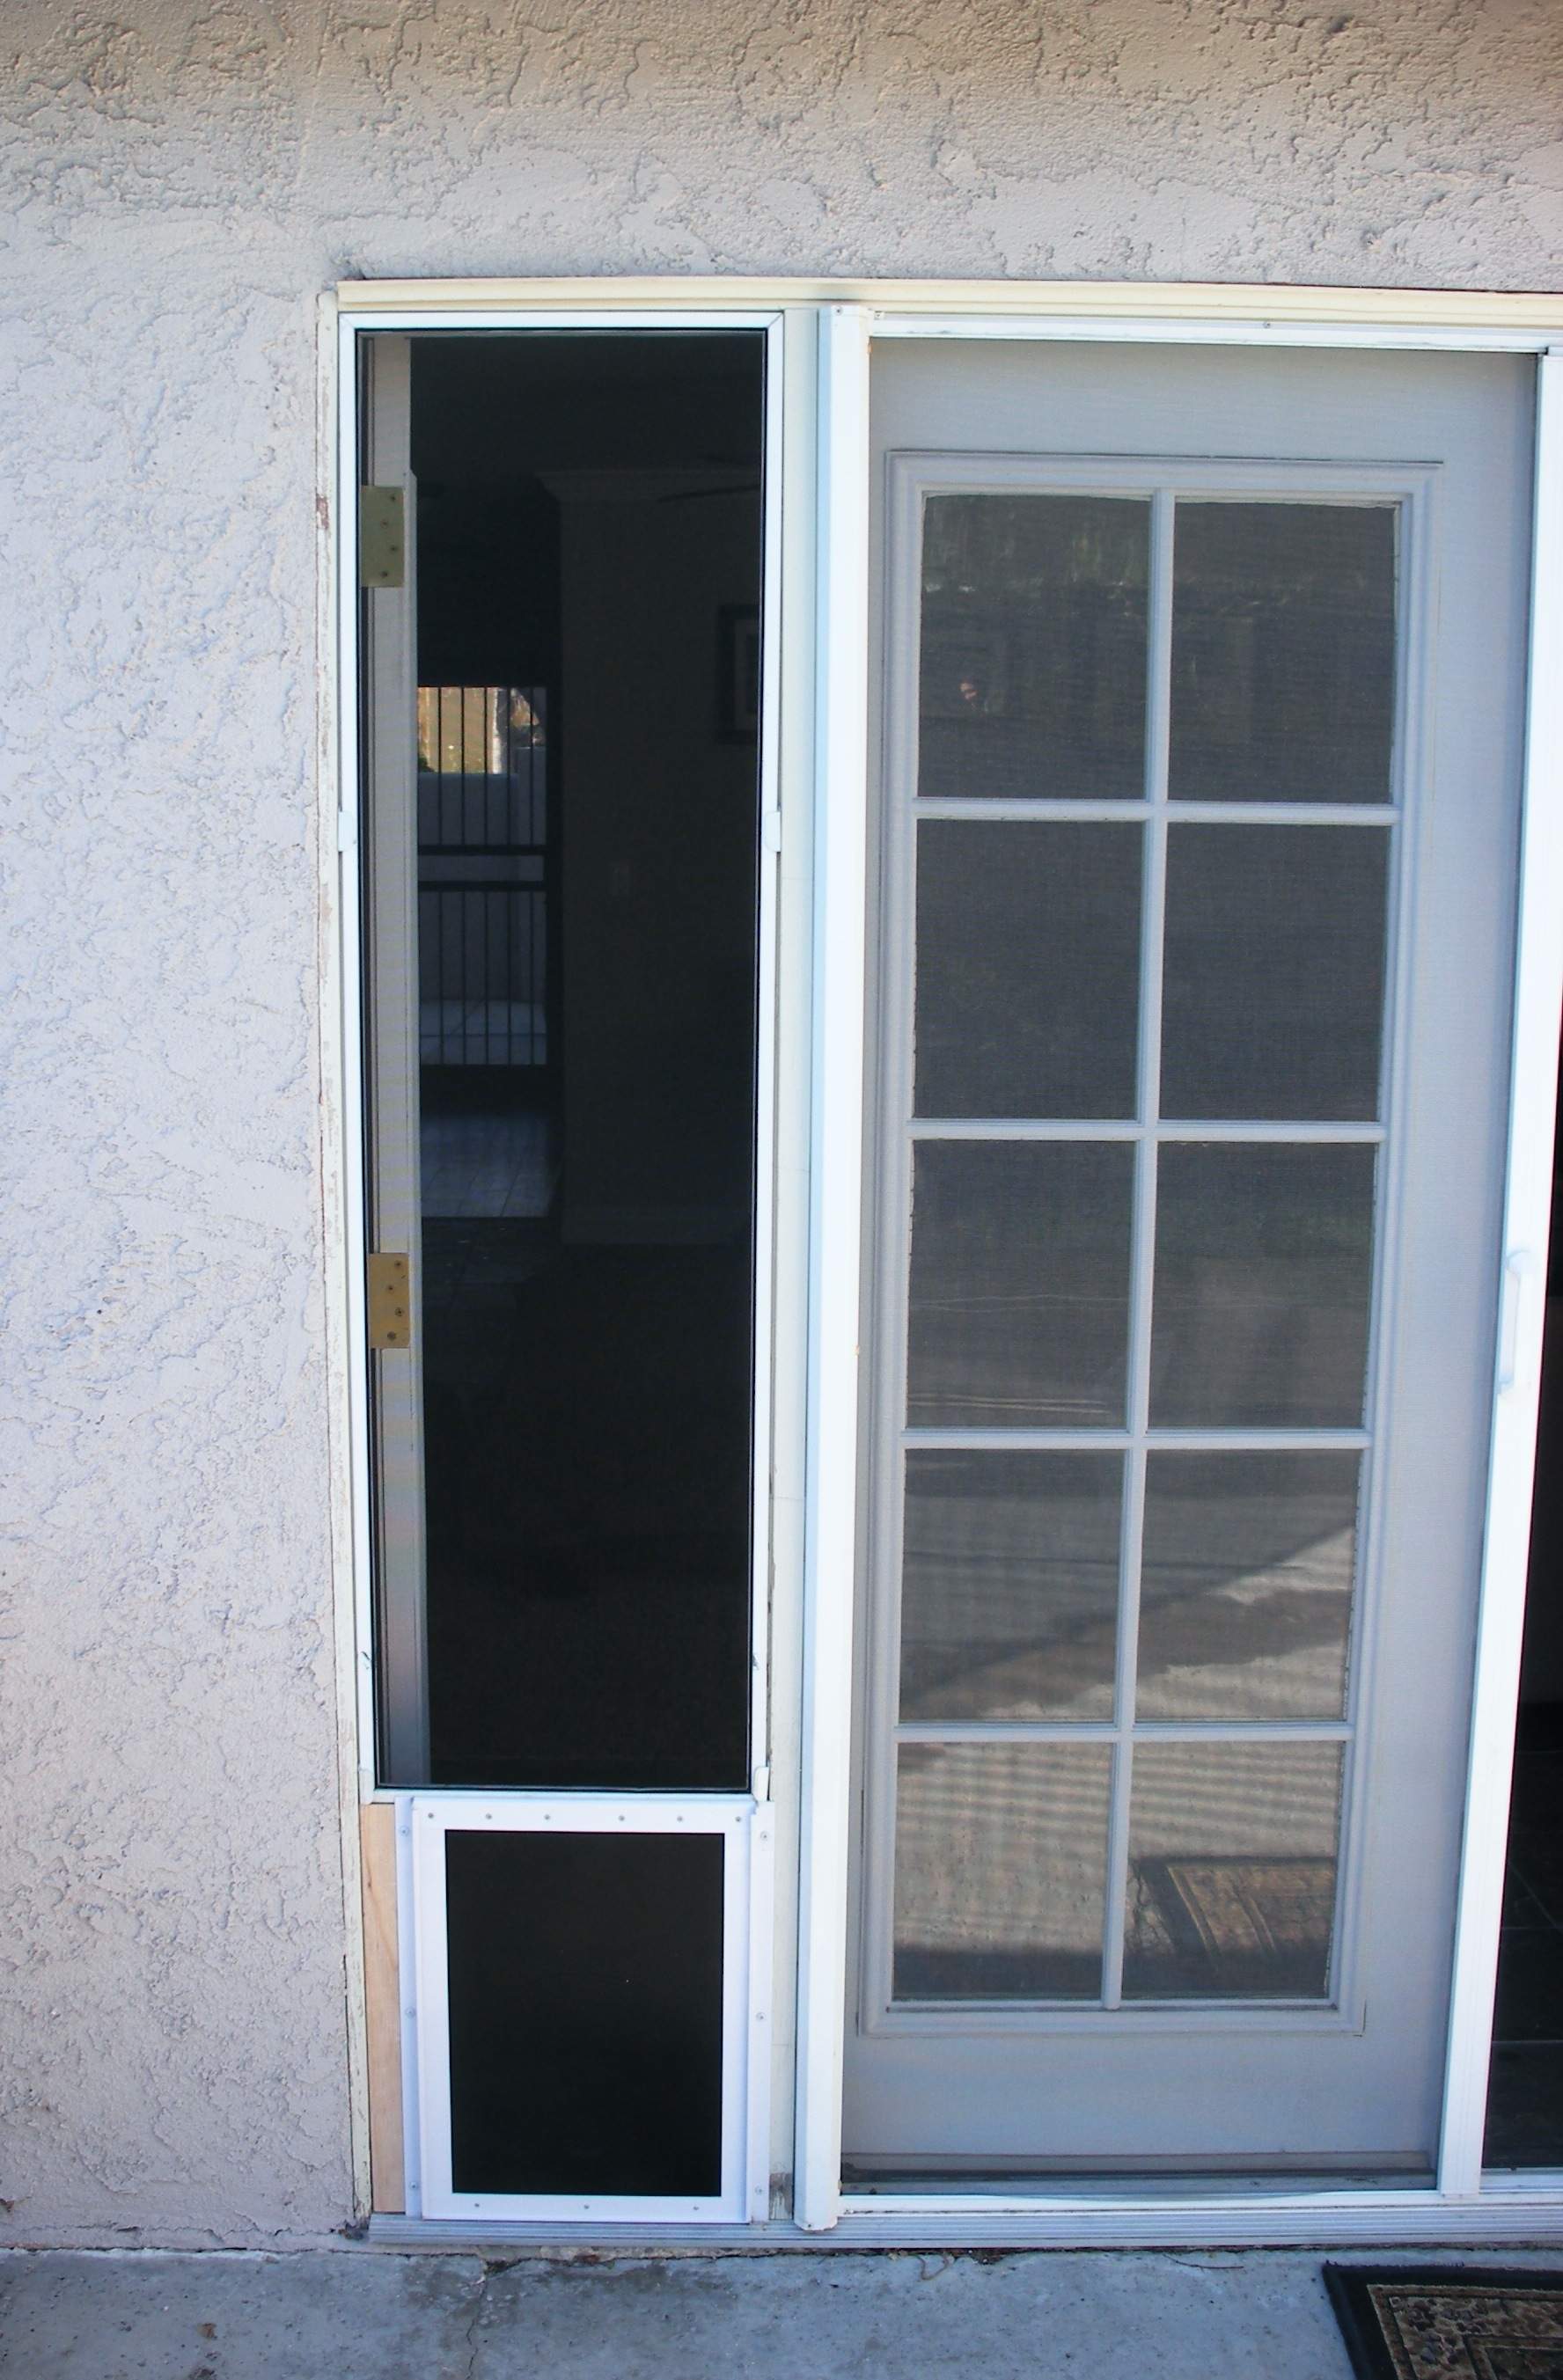 Exterior Doors With Pet Door Homeofficedecoration Exterior Doors With Pet Door Weather Pet